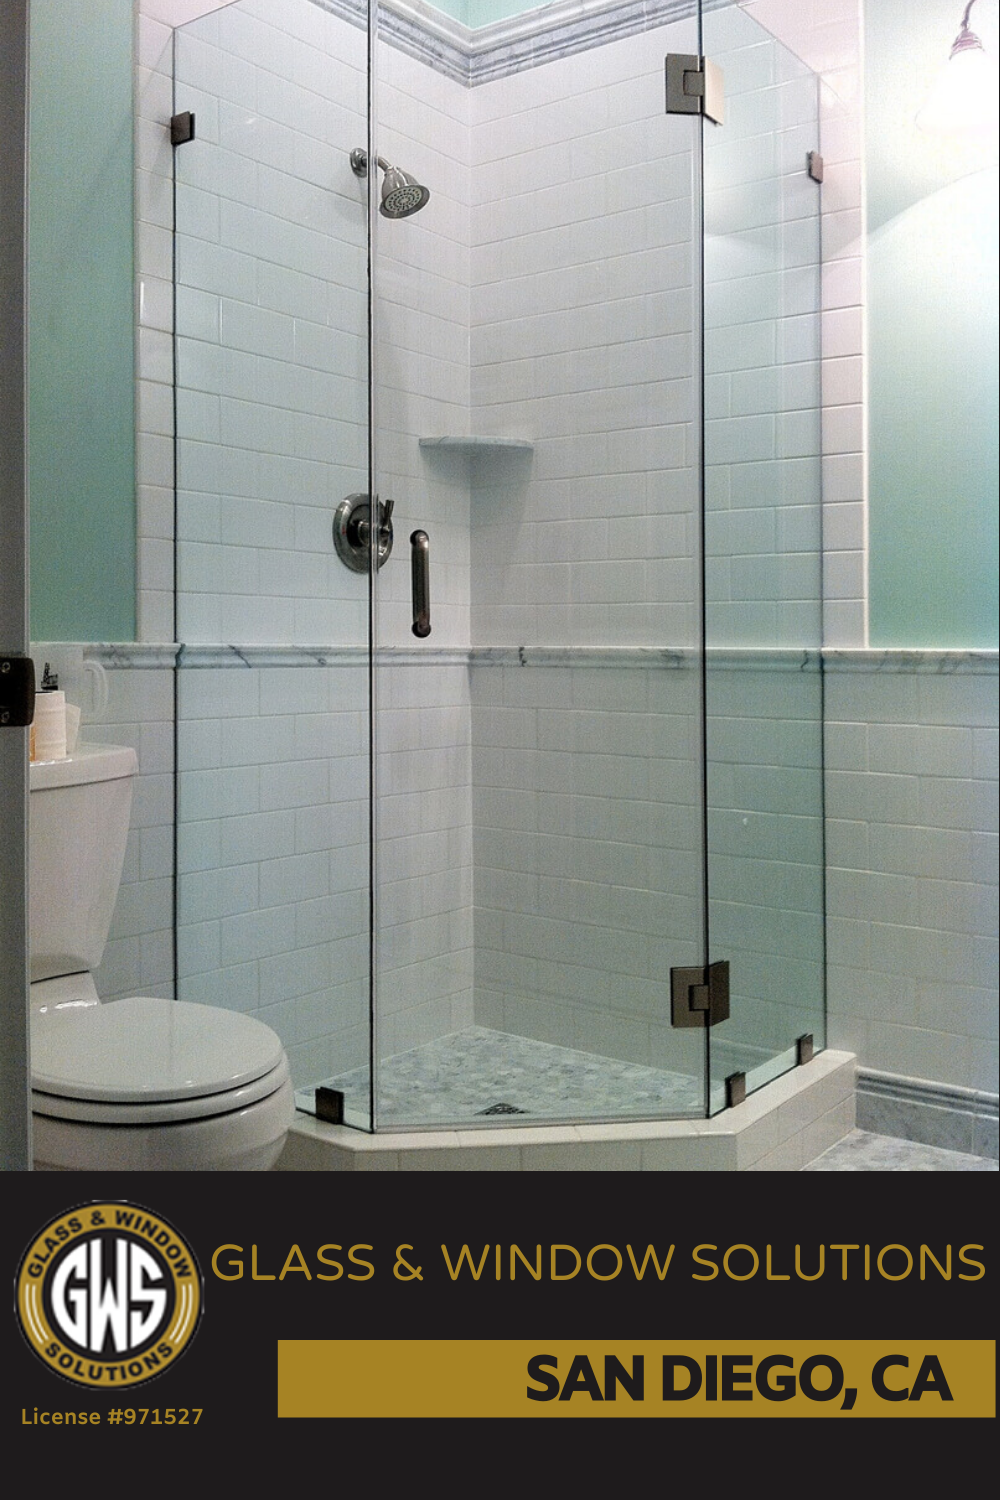 No Modern Bathroom Is Complete Without A Frameless Shower Door